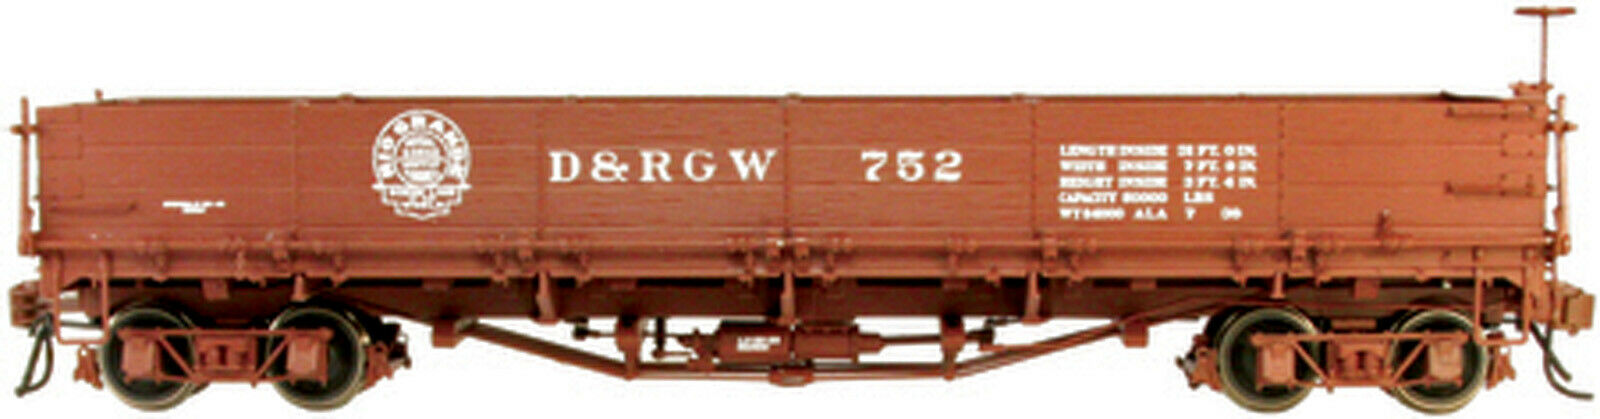 Serie D & RGW 700 descapotable 752 on3 on30 on30 on30 RTR sjc752 655